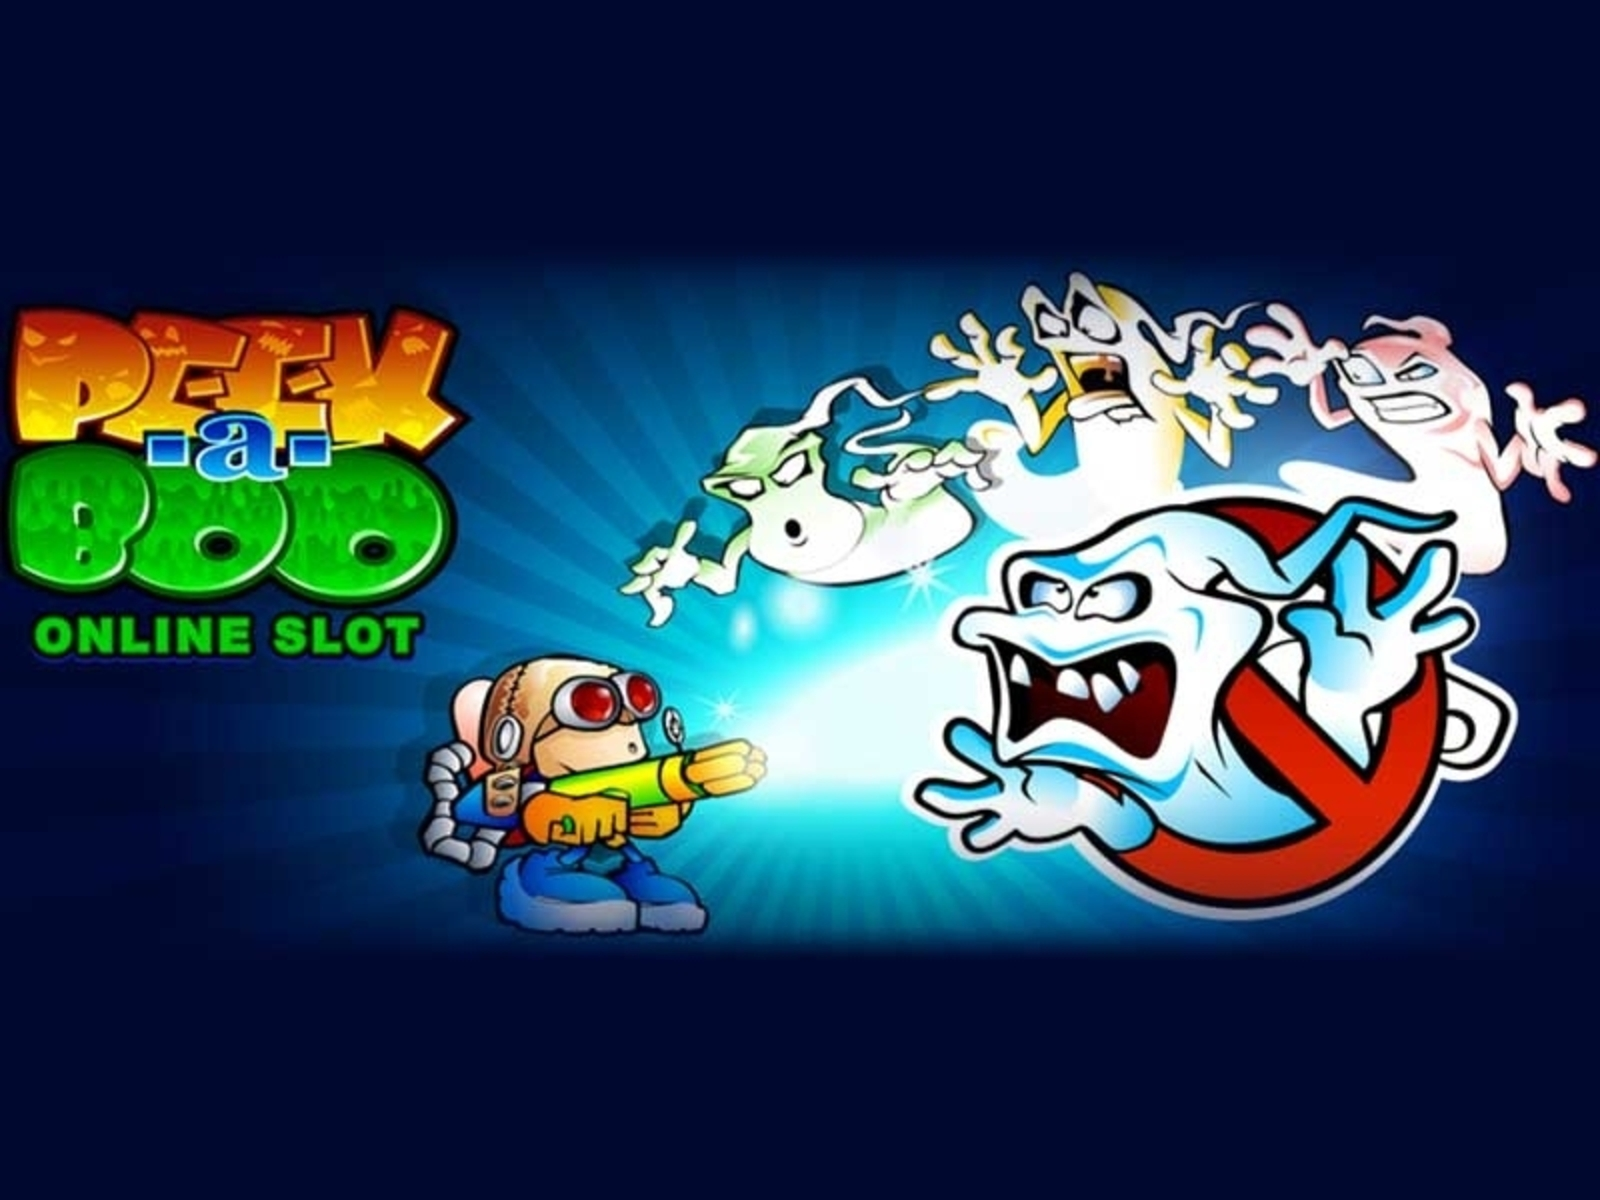 The Peek-a-Boo Online Slot Demo Game by Microgaming